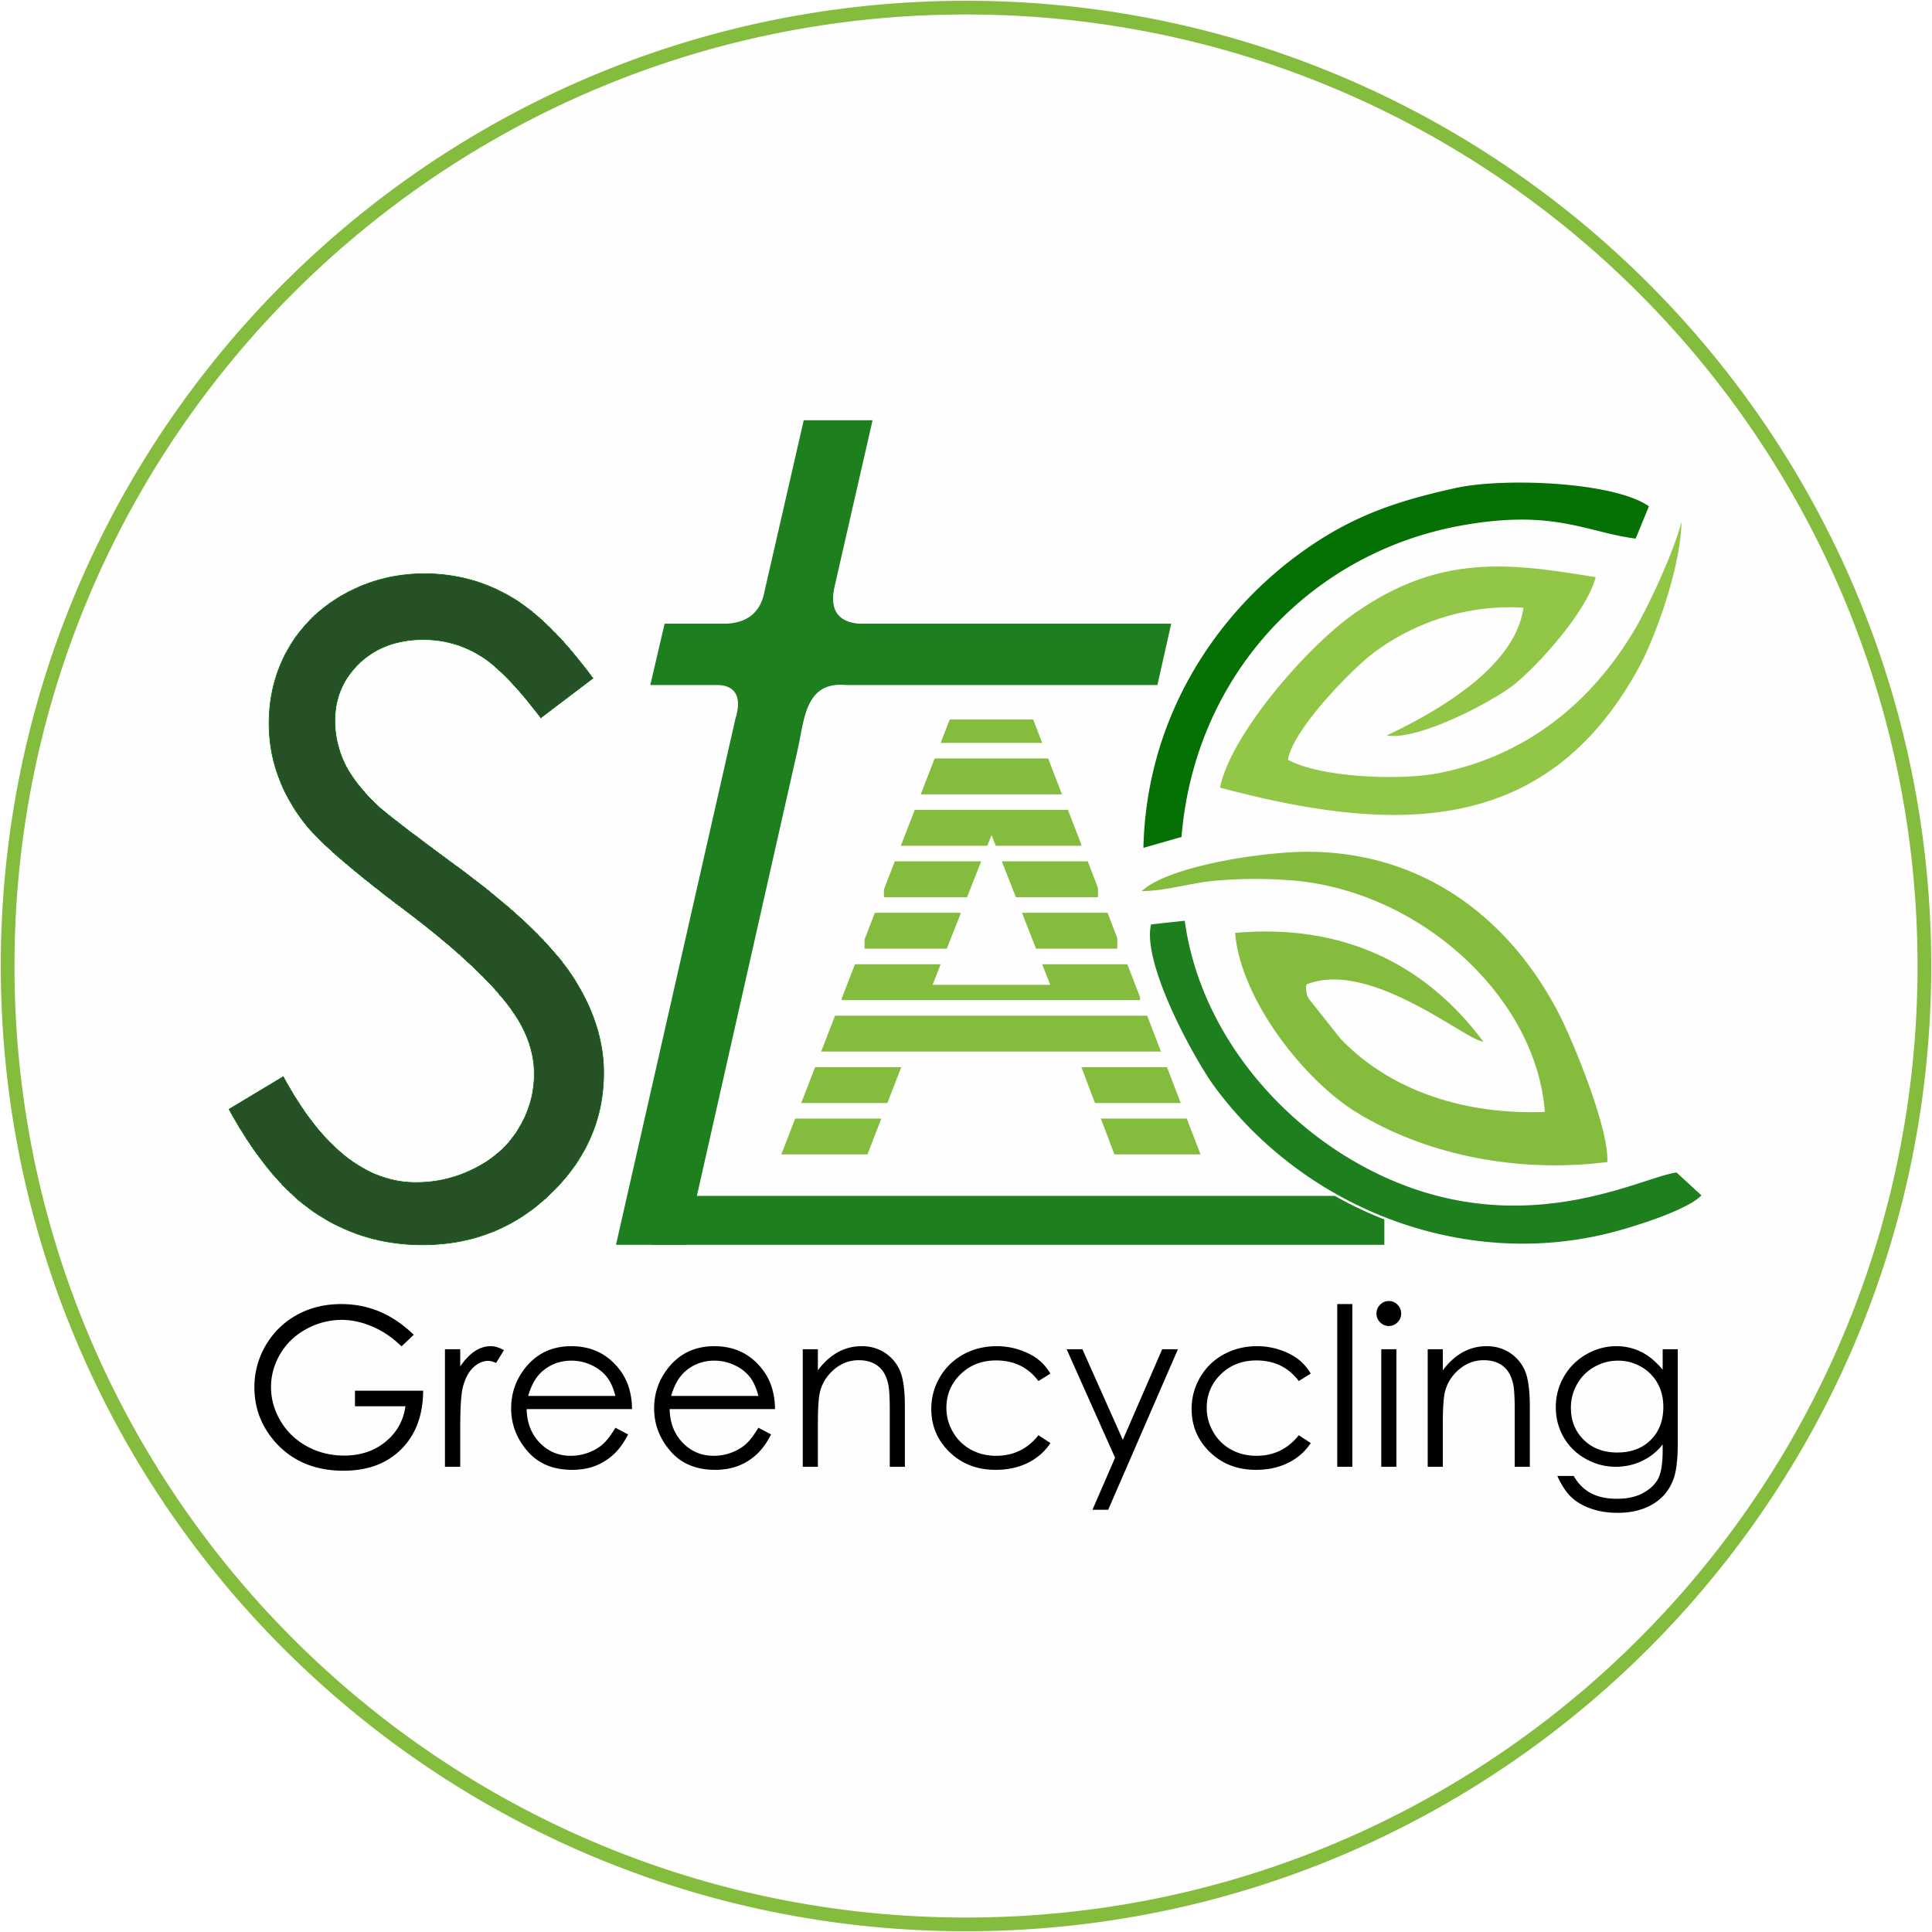 https://www.urecycleinitiative.org/wp-content/uploads/2020/04/STAC-logo.png